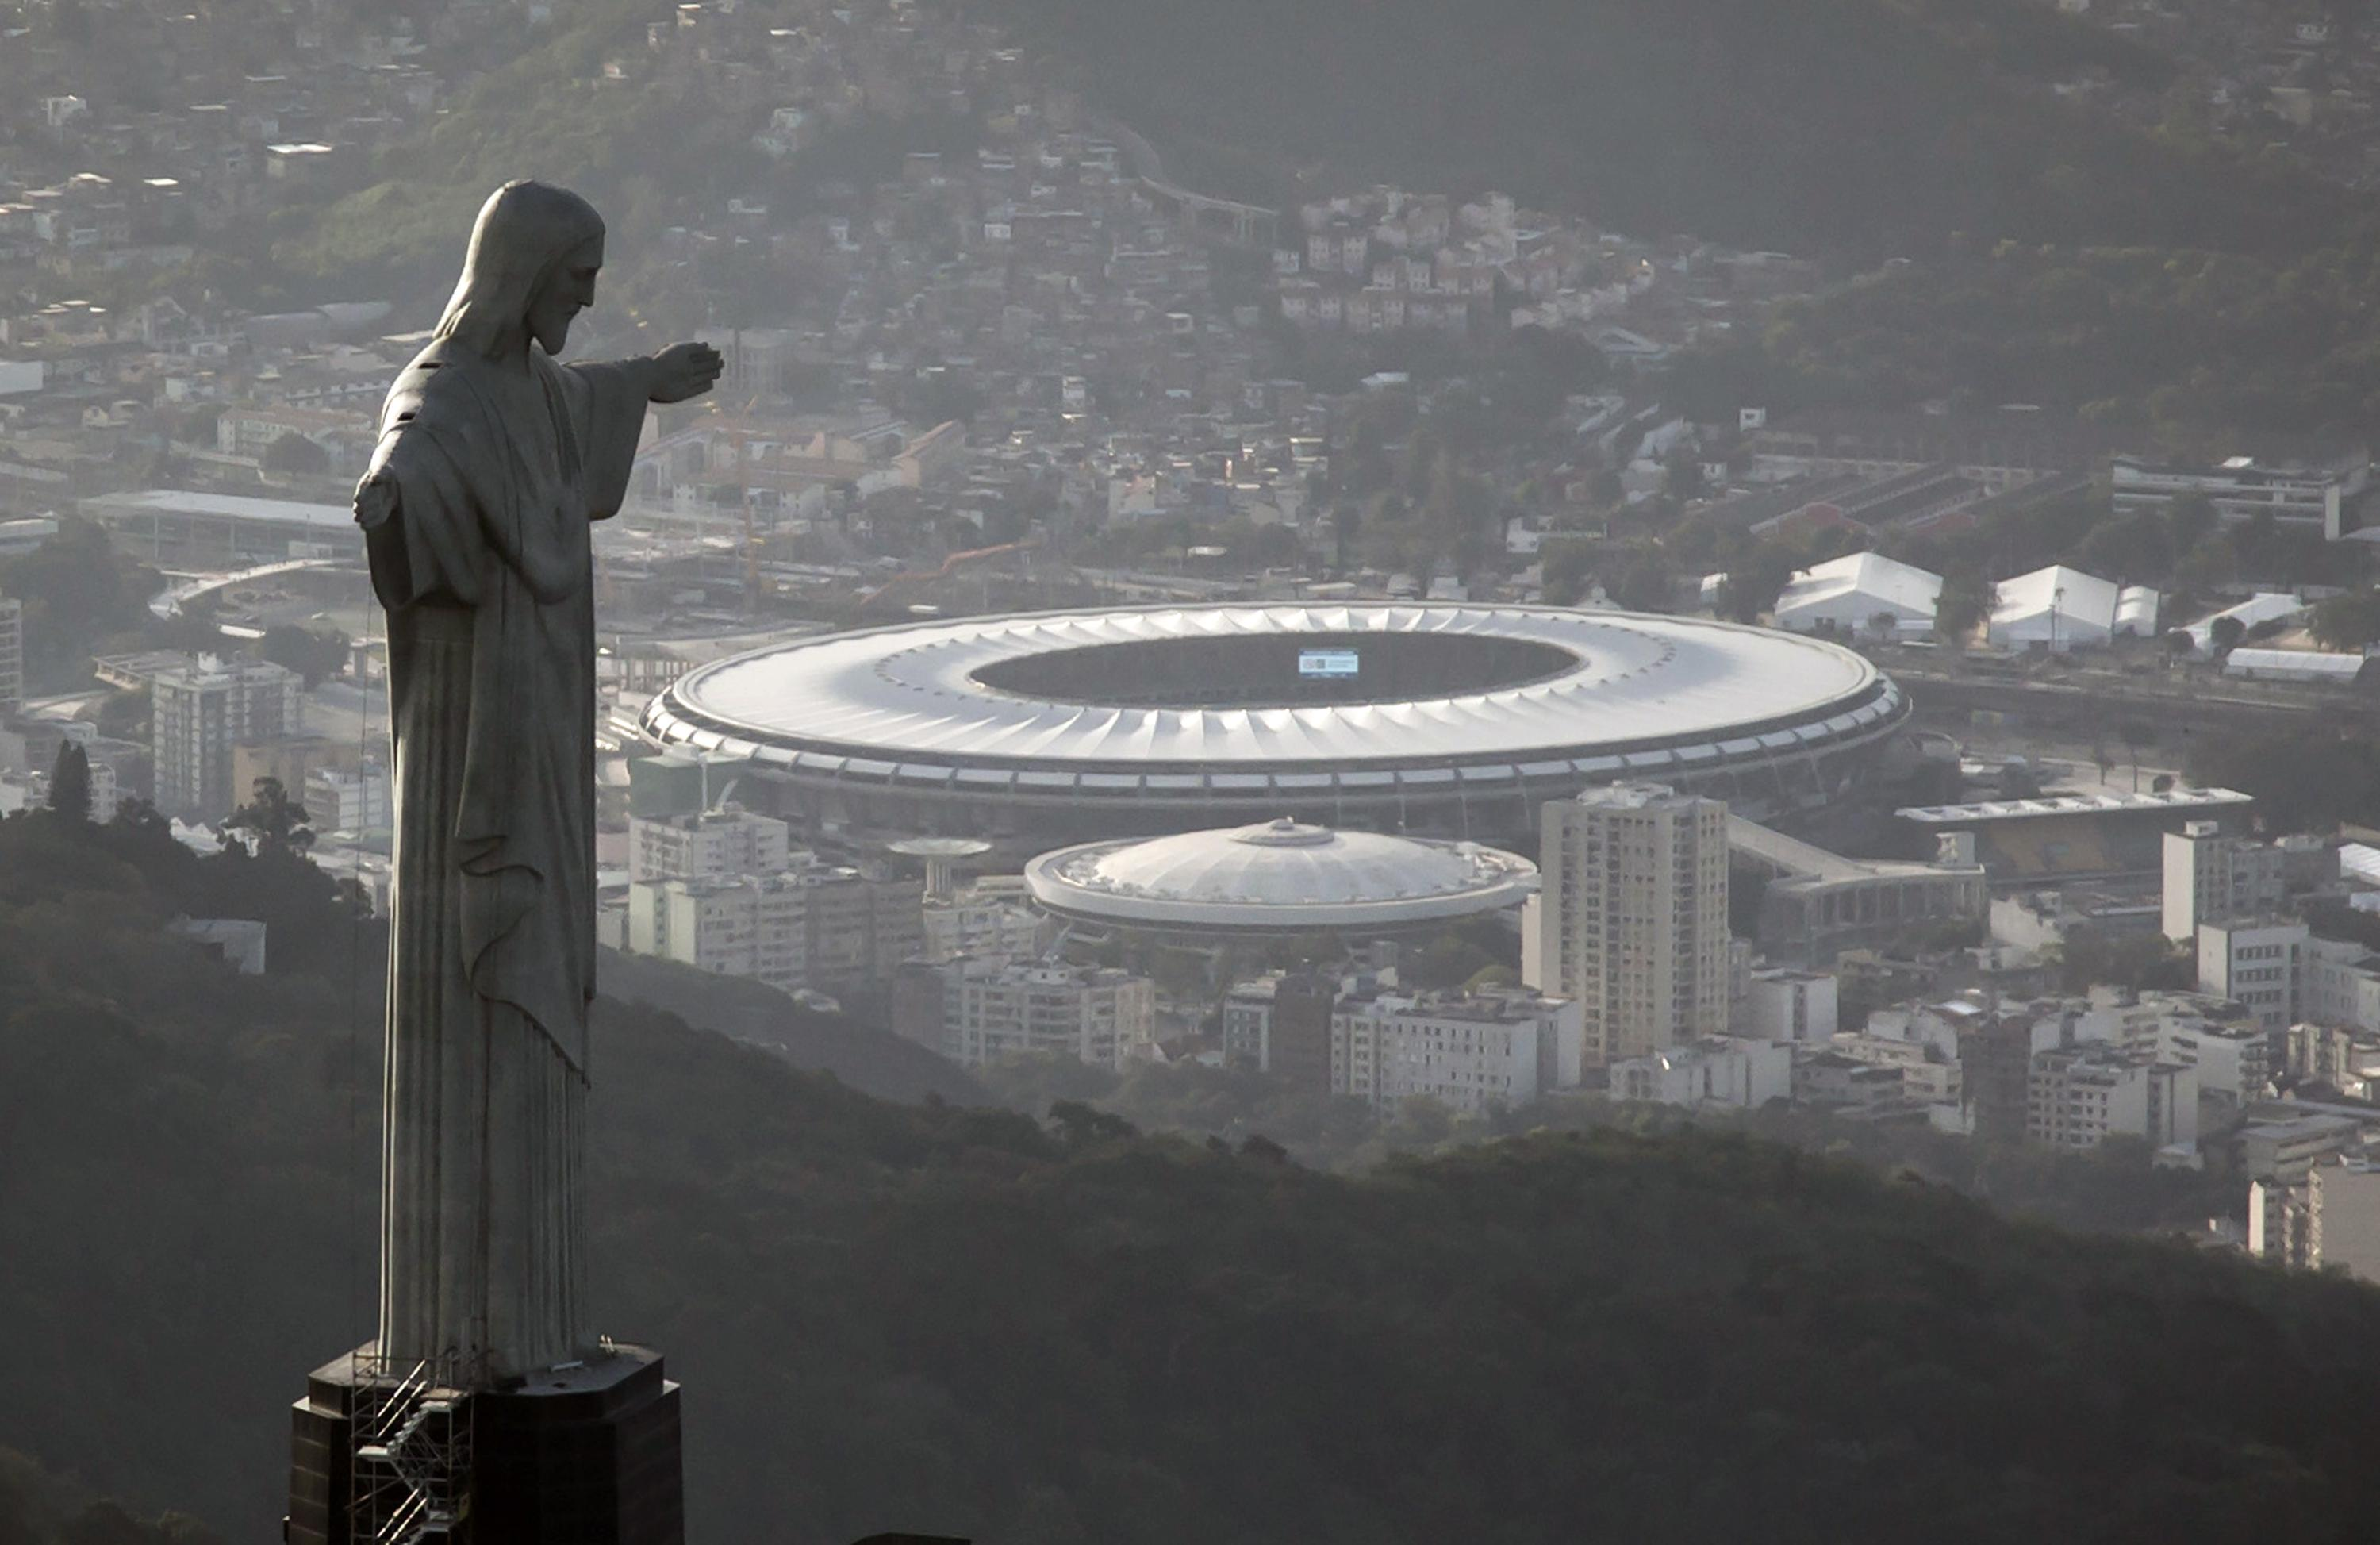 How Rio's Christ the Redeemer Statue Is Being Used To Discourage Widespread Brazilian Corruption